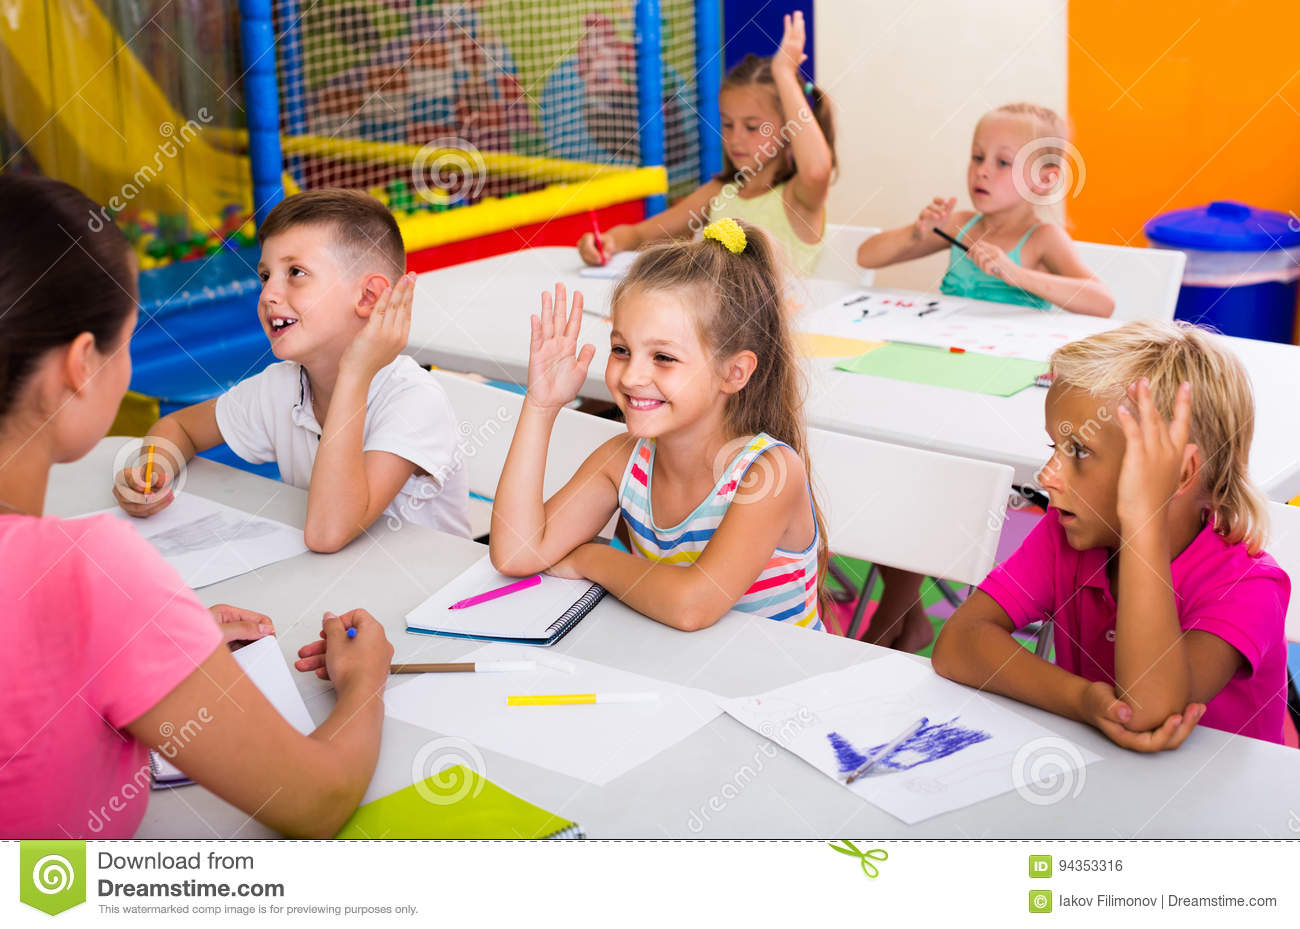 Children sitting together and studying in class at school